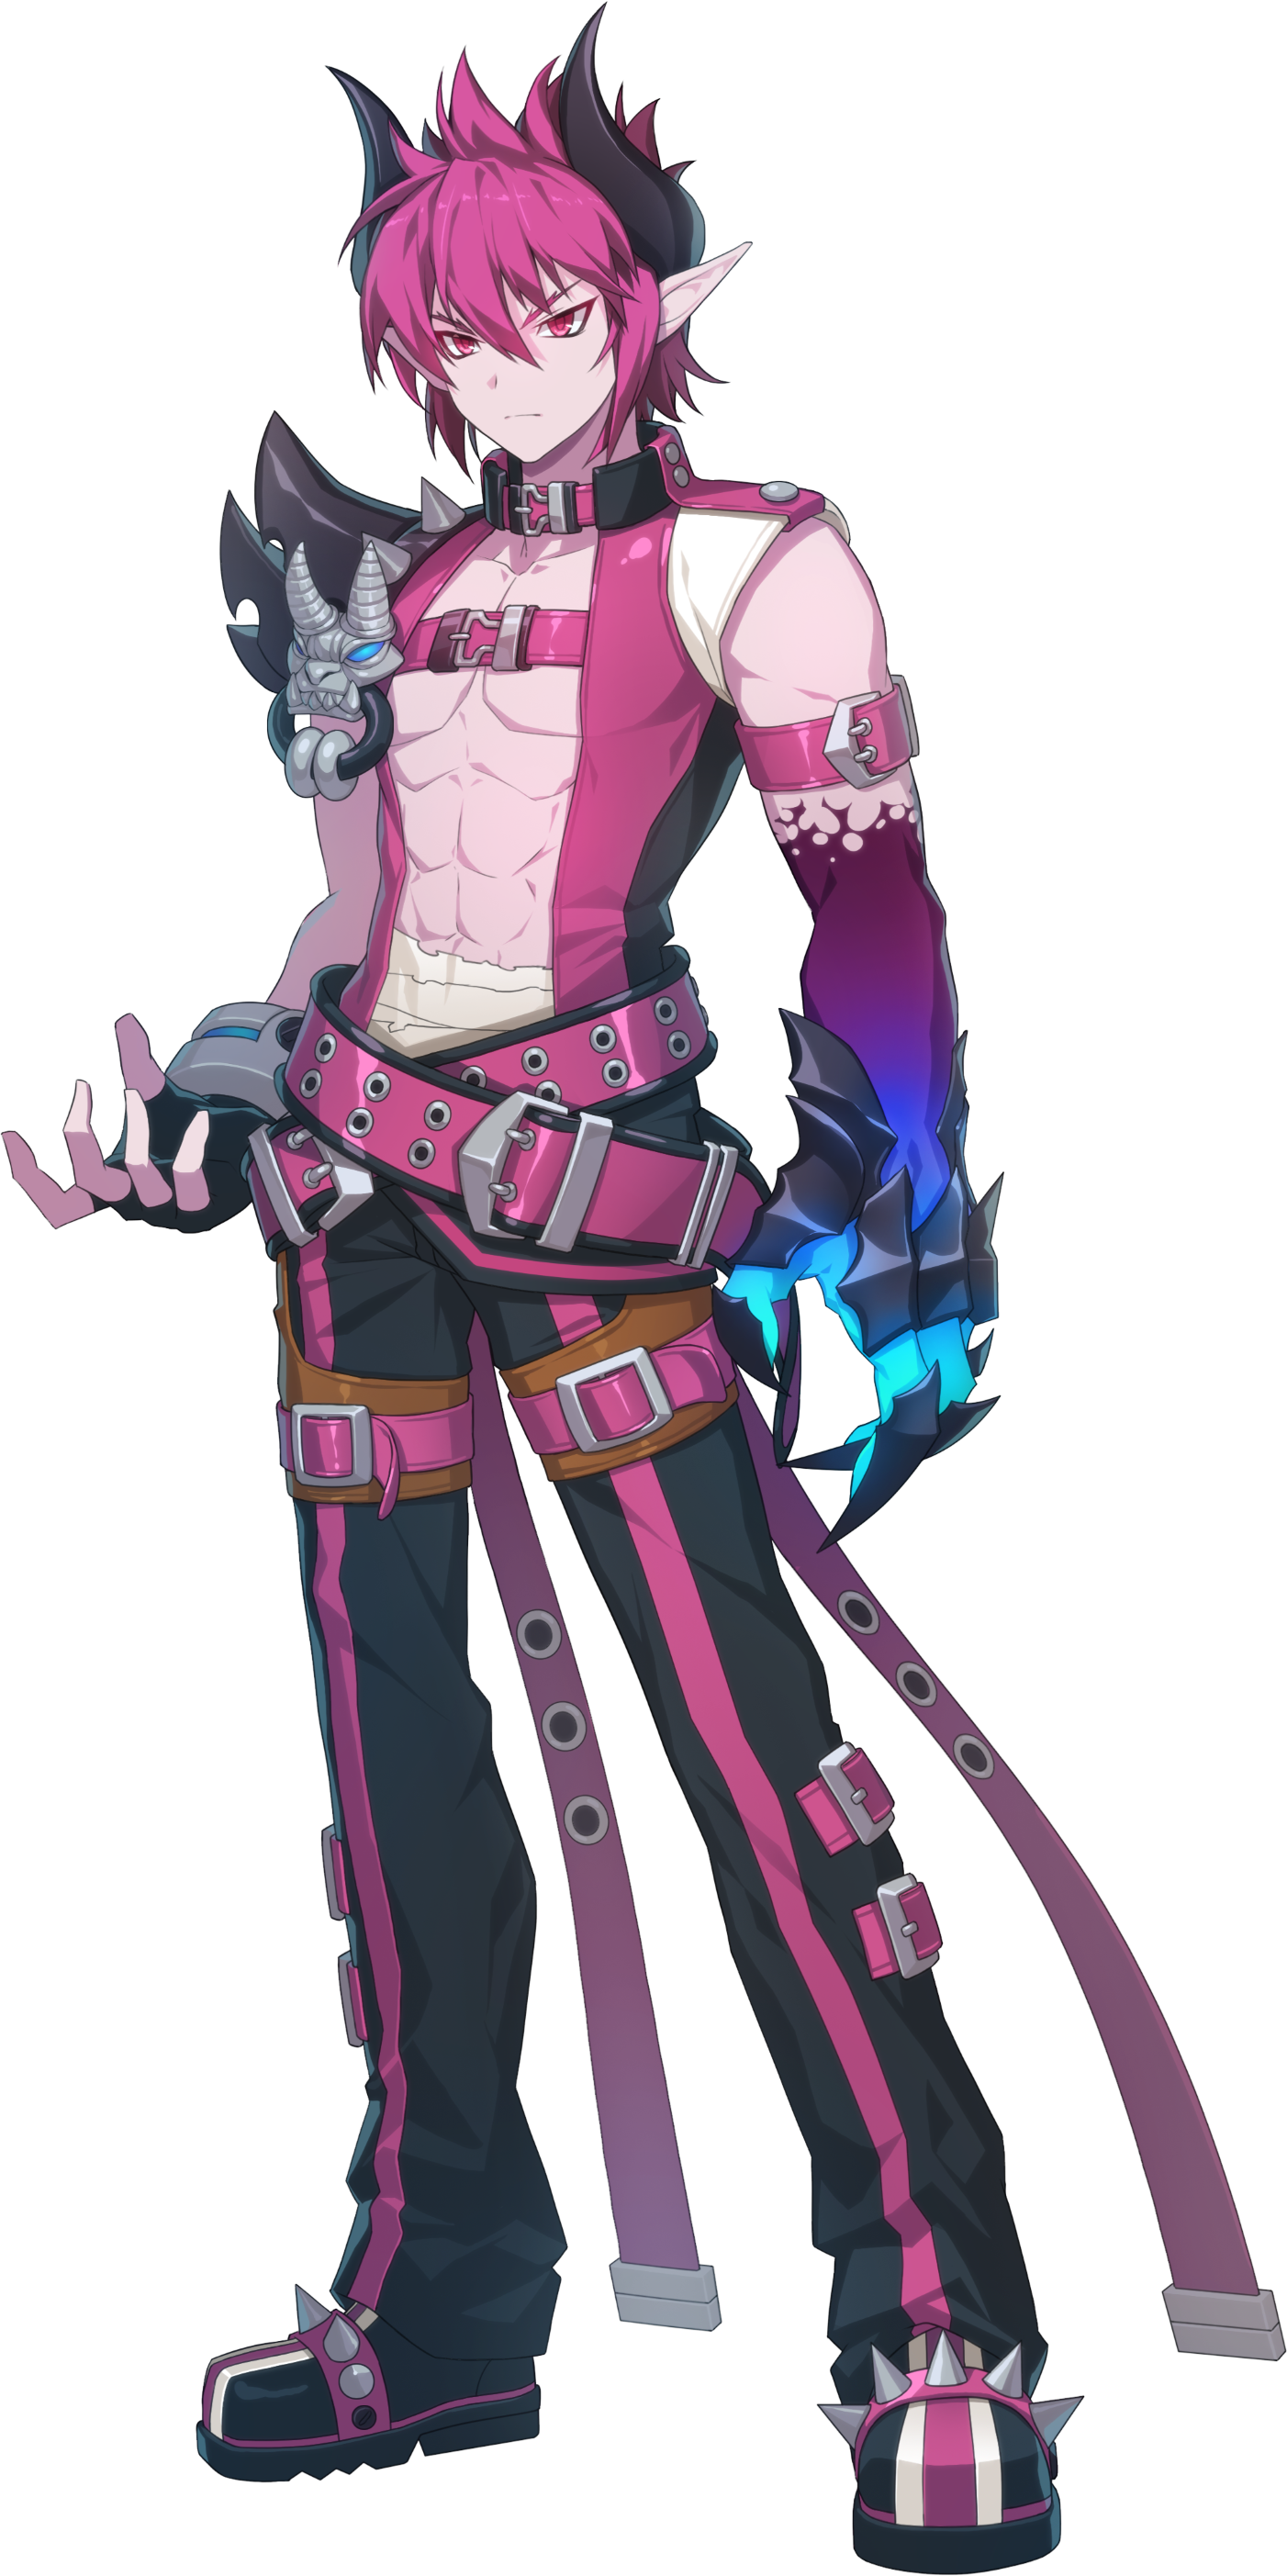 Dio/Grand Chase Dimensional Chaser | Grand Chase Wiki